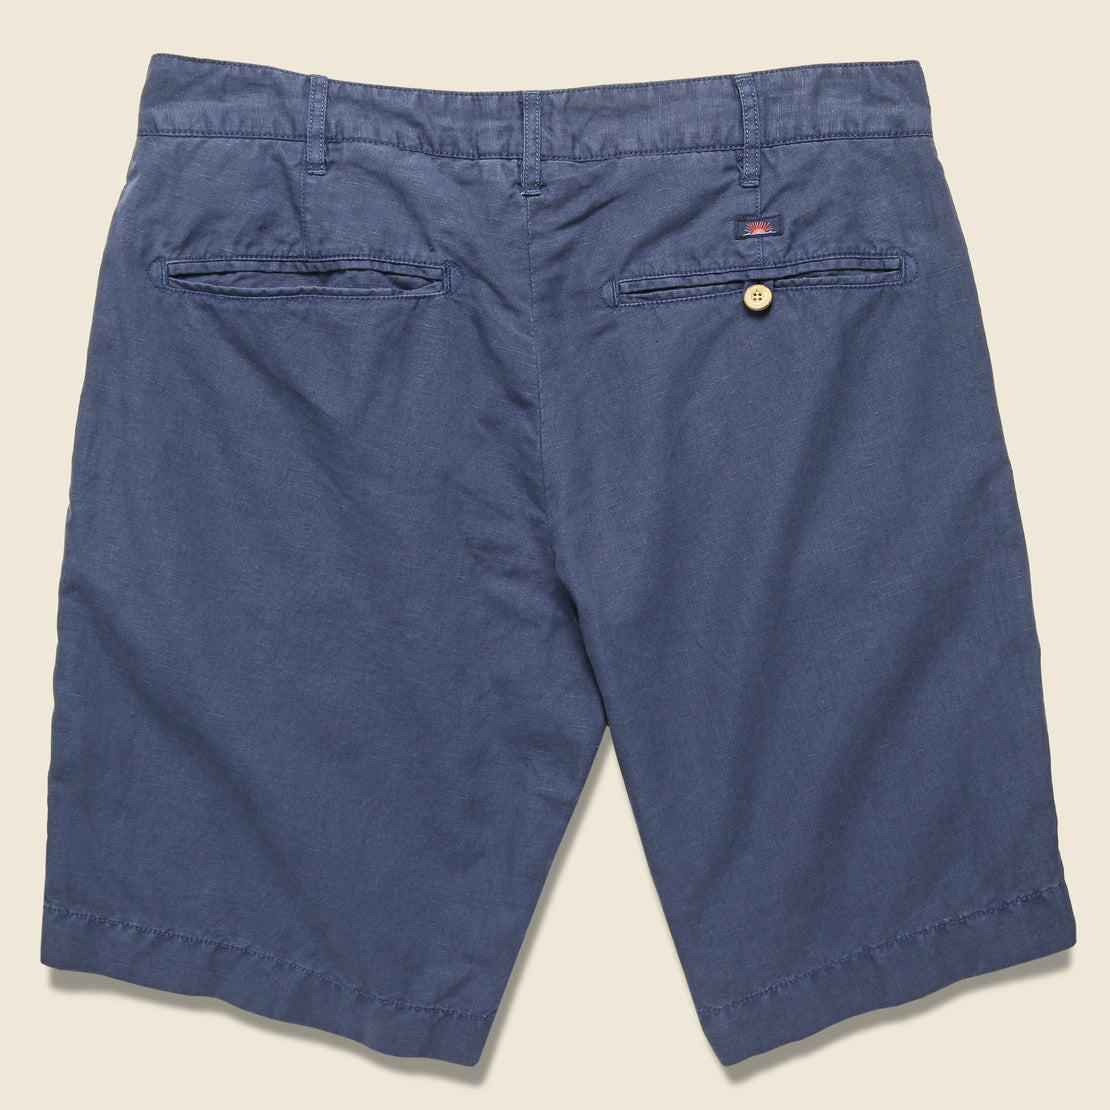 Malibu Short - Dark Navy